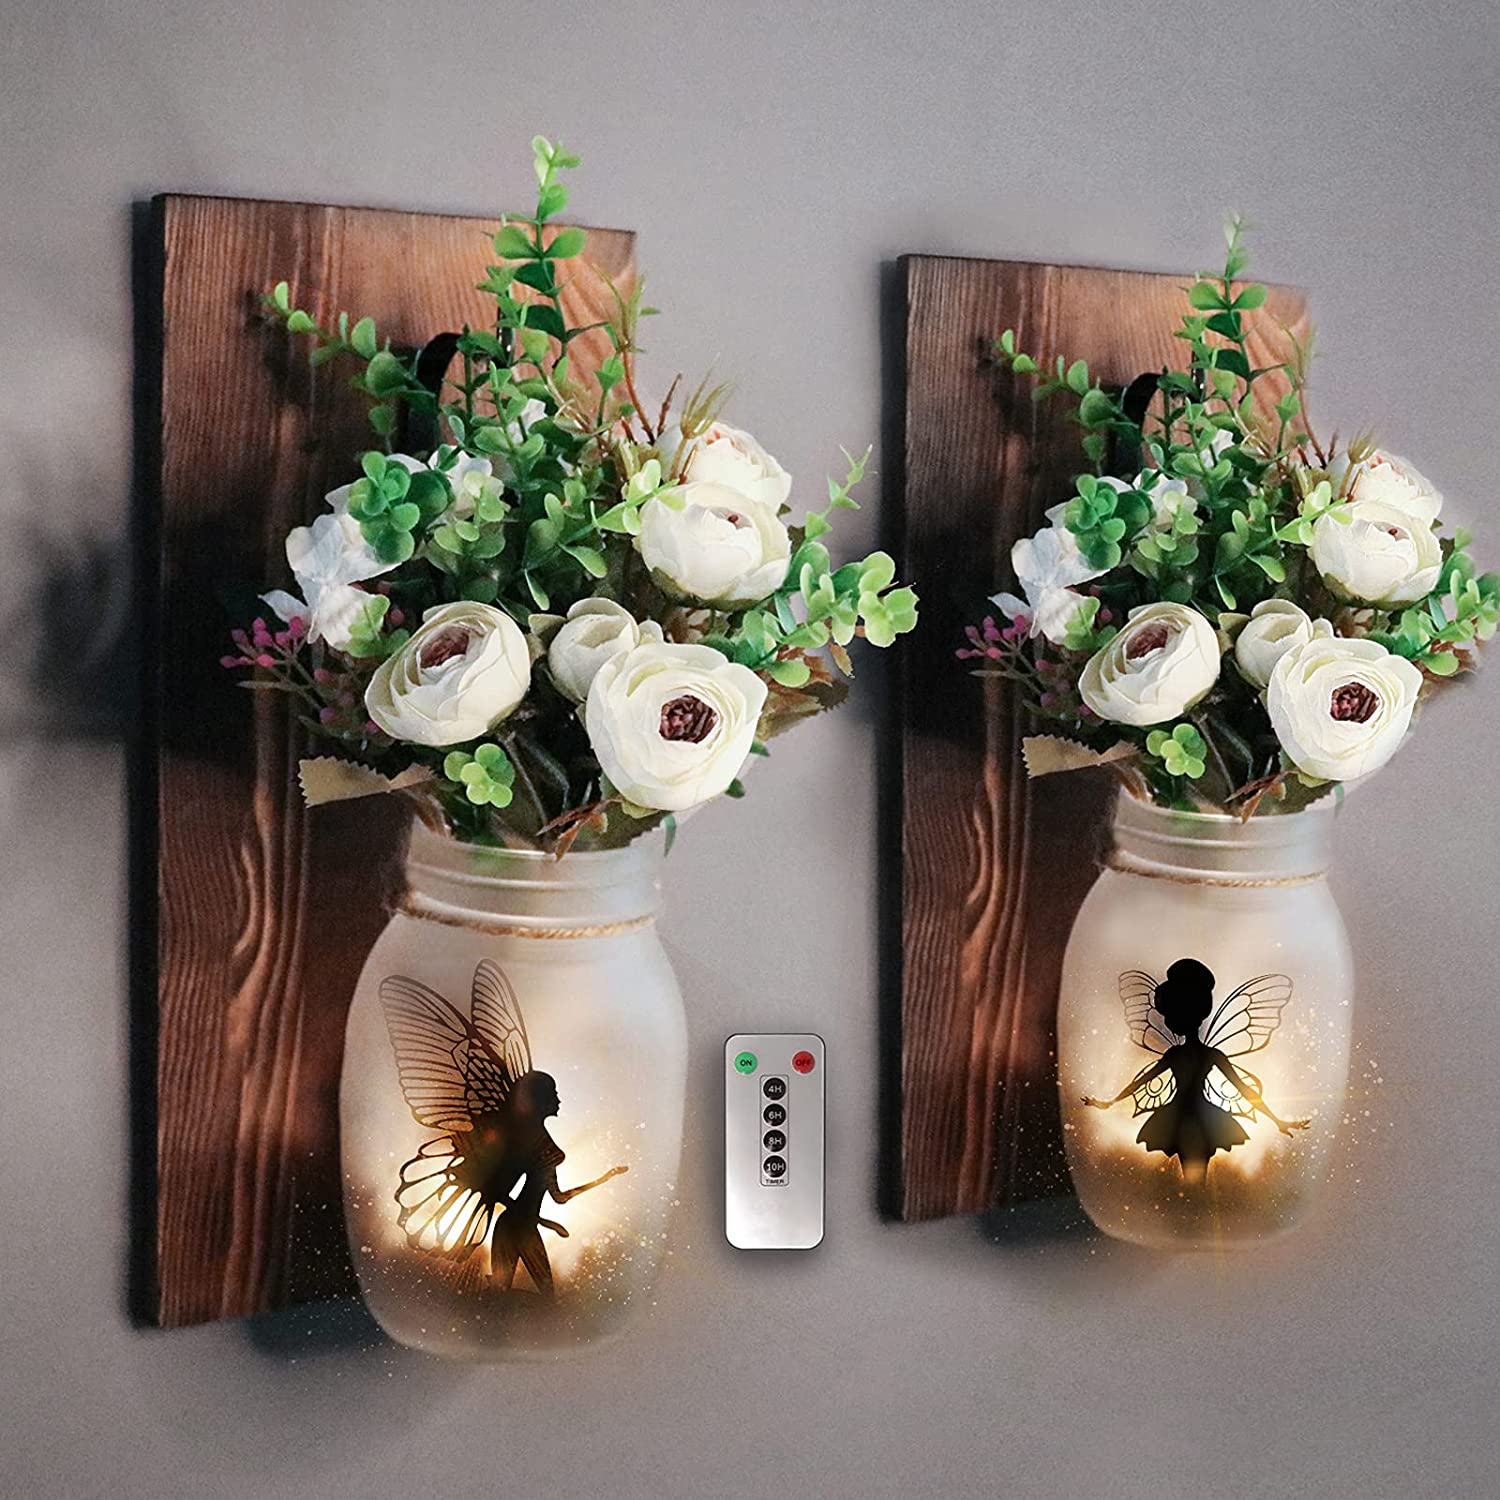 Wall Decor Mason Jar Sconces - Alritz 2 Pack Rustic Wall Sconces Light with Remote Flowers Magic Fairy for Bedroom Wall Decor Living Room Kitchen Decorations